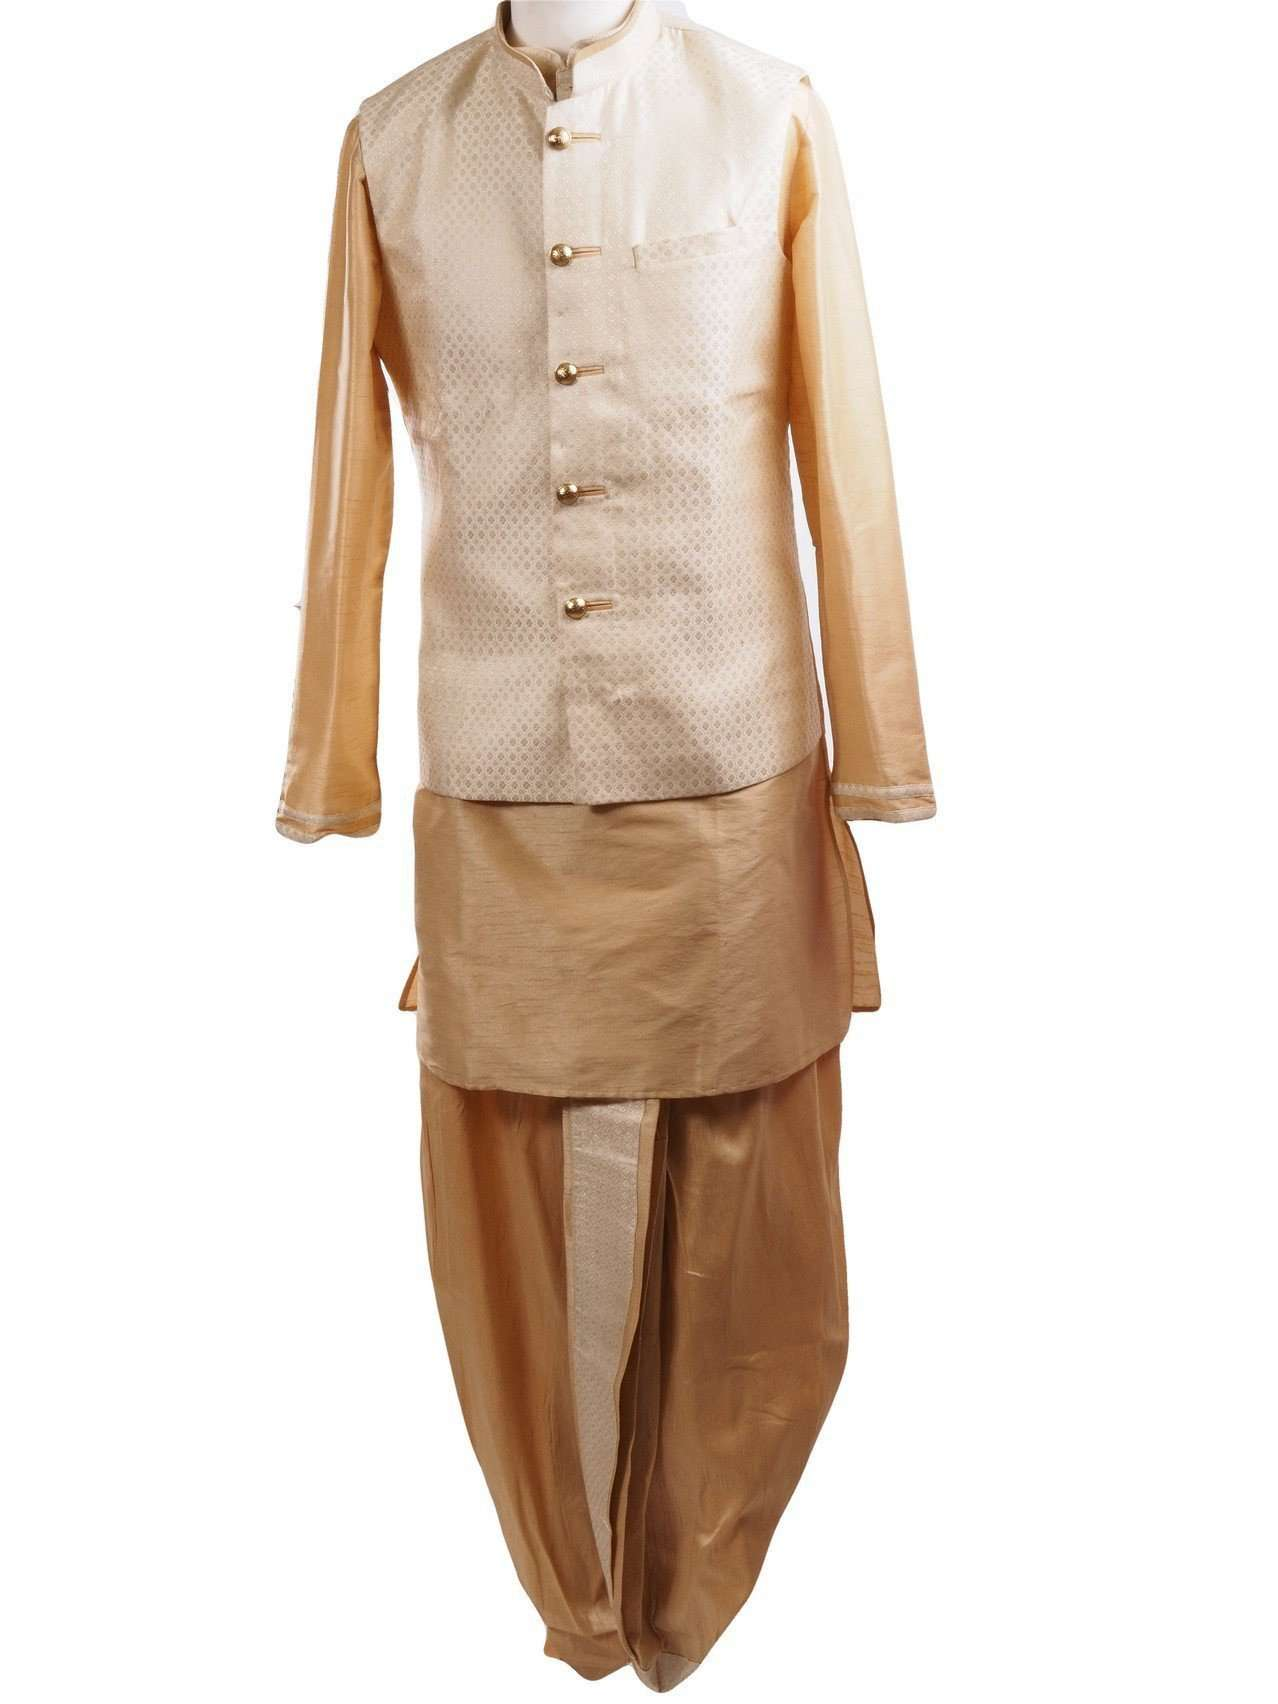 Gold Raw silk Kurta Dhoti set with Cream Brocade waistcoat - Bollywood, Weddings, Fancy Dress - SNC595PT - Prachy Creations